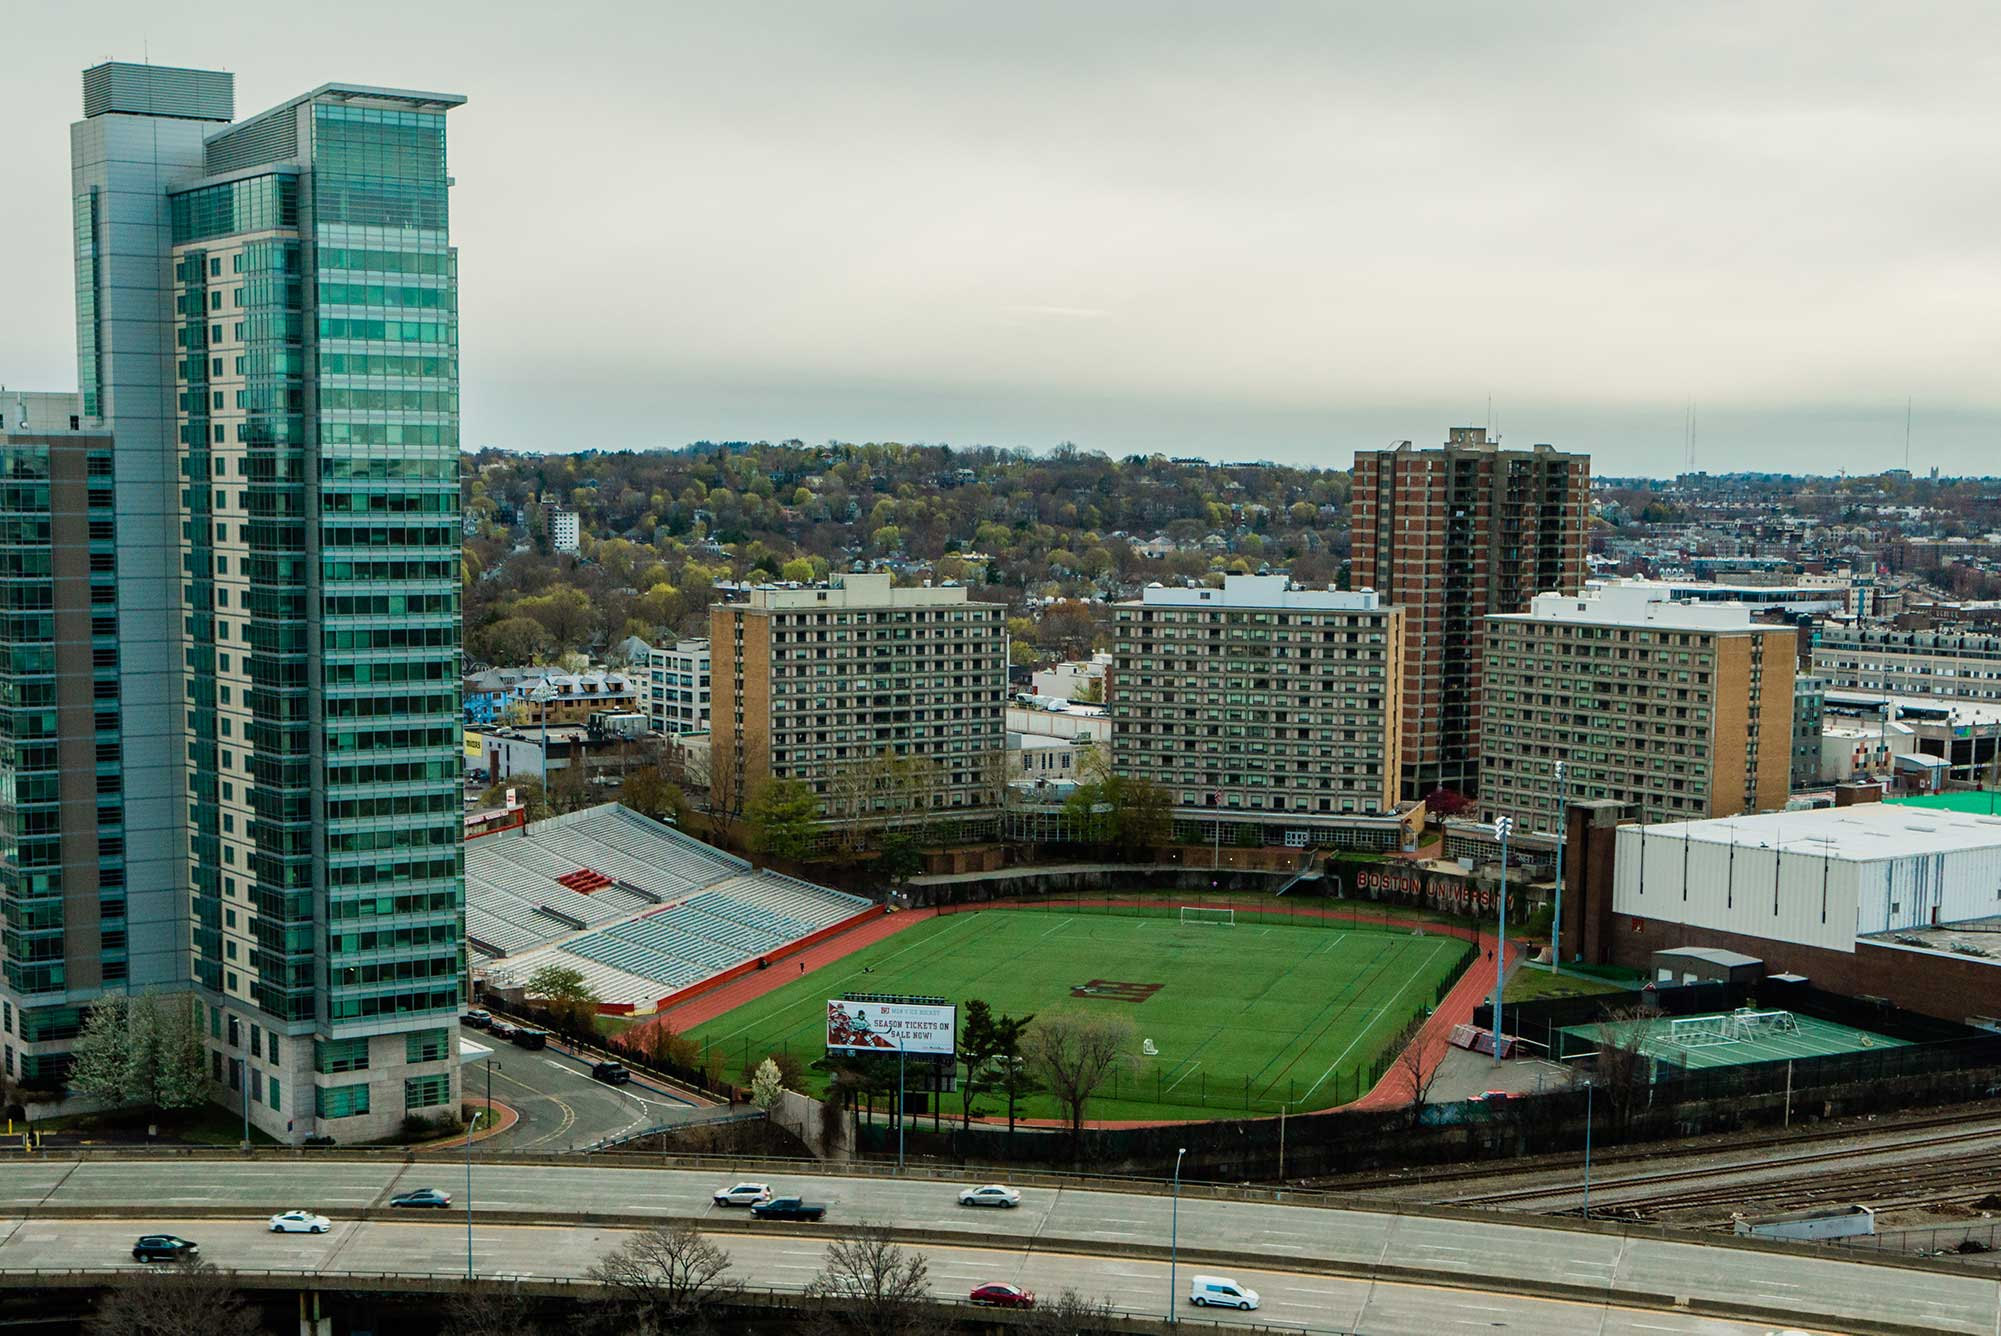 A photo of Nickerson Field, where BU Commencement is held, from above